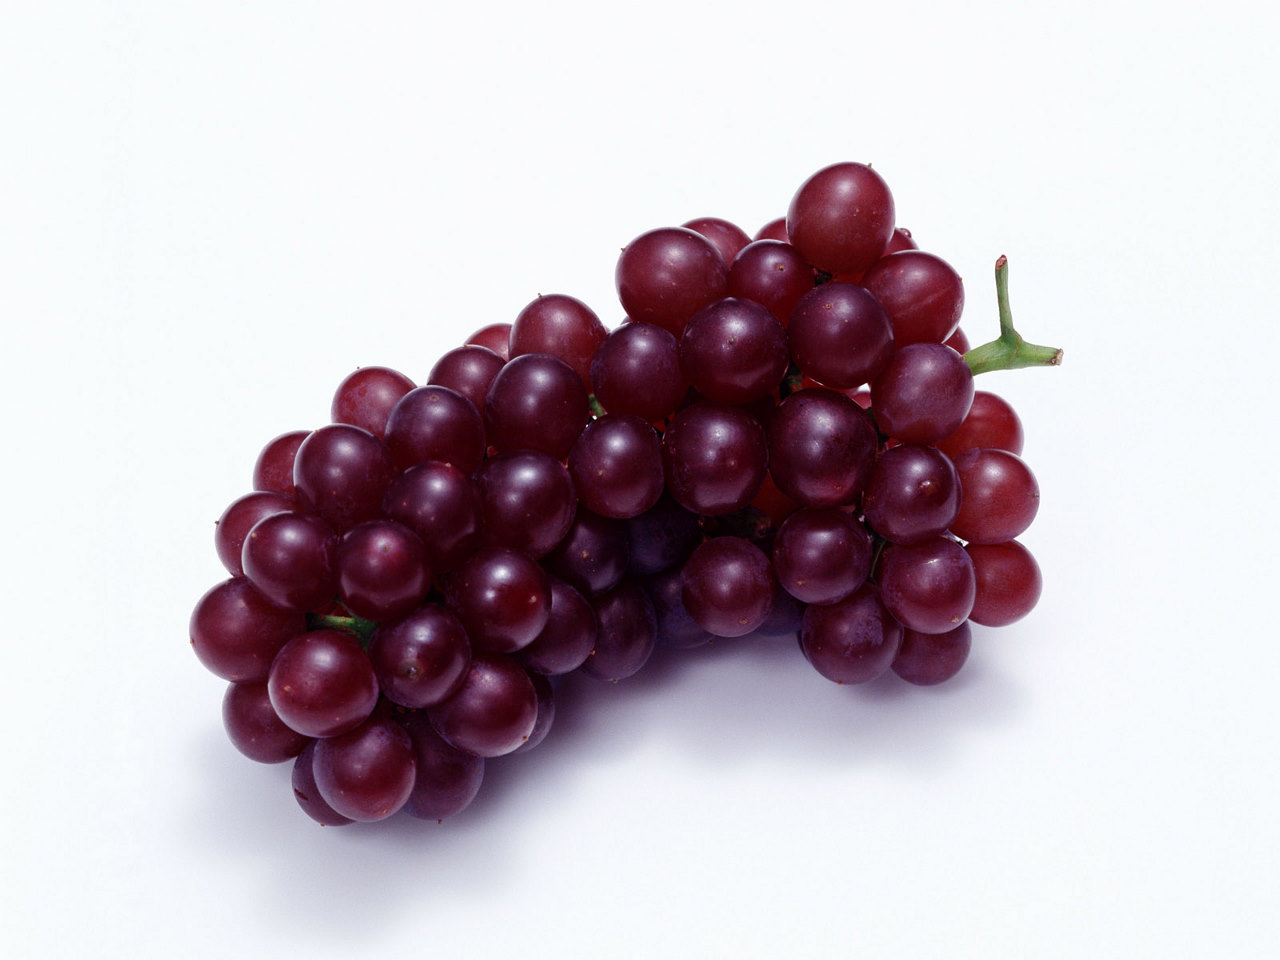 Http Www Fanpop Com Clubs Fruit Images 34914690 Title Grapes Photo